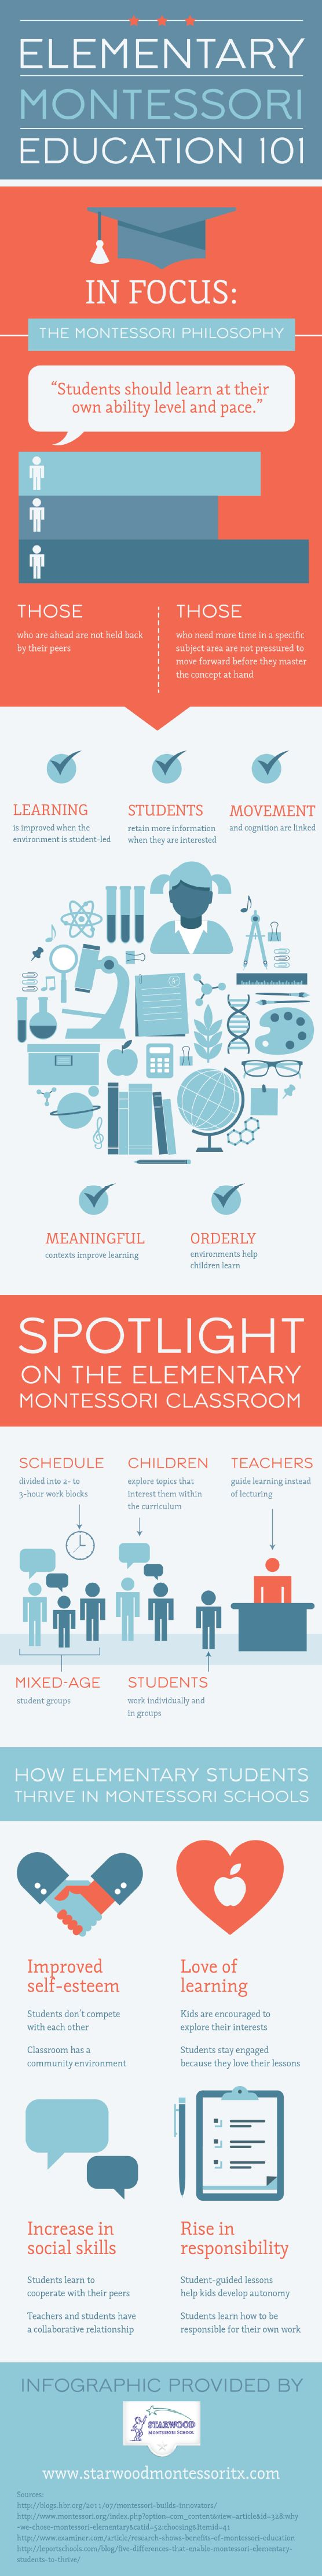 Elementary Montessori Education 101 #infographic #Education